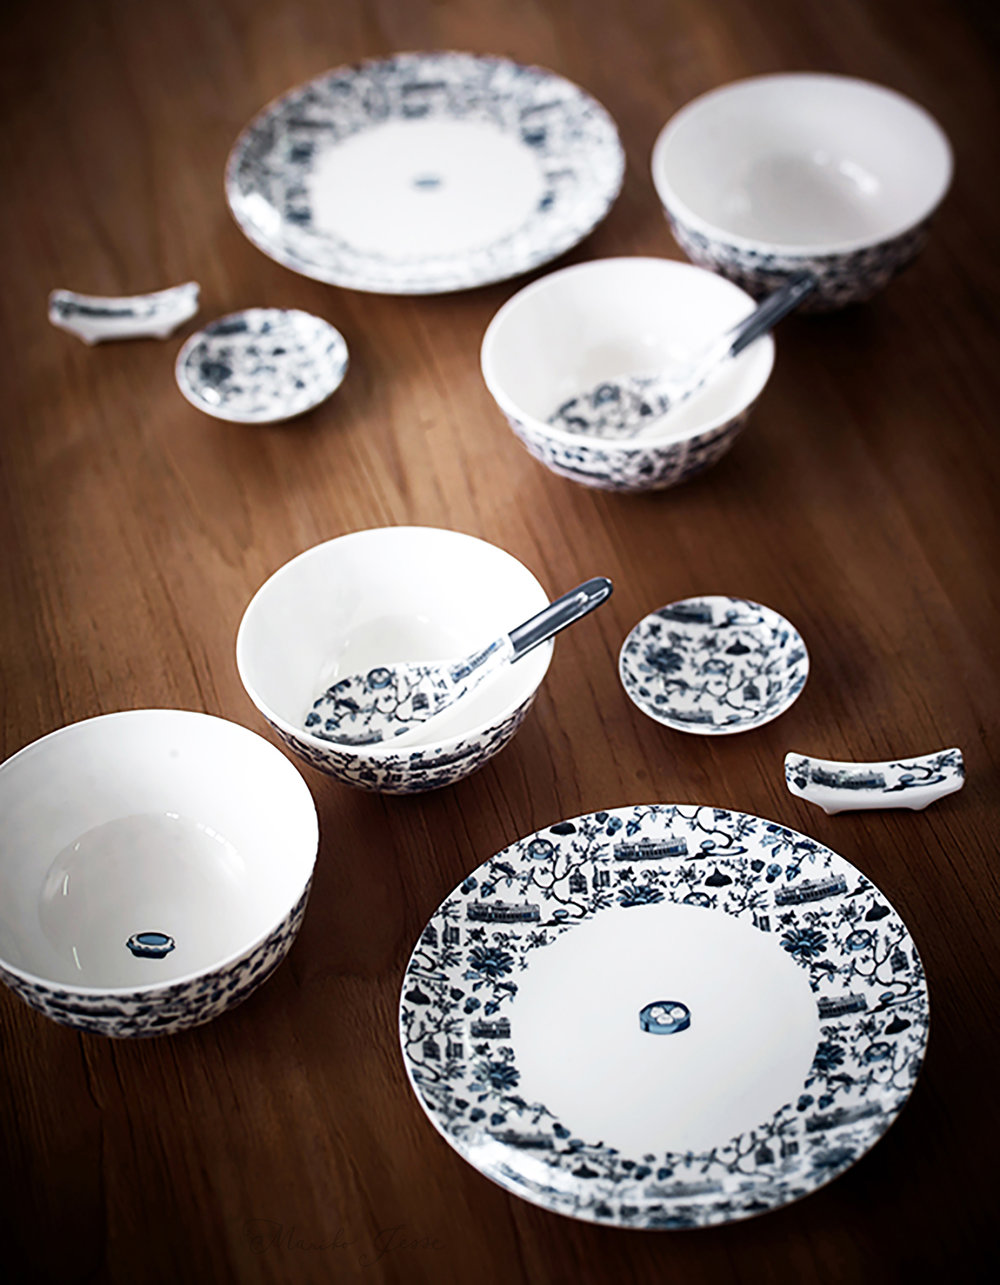 teaset in HK toile collection